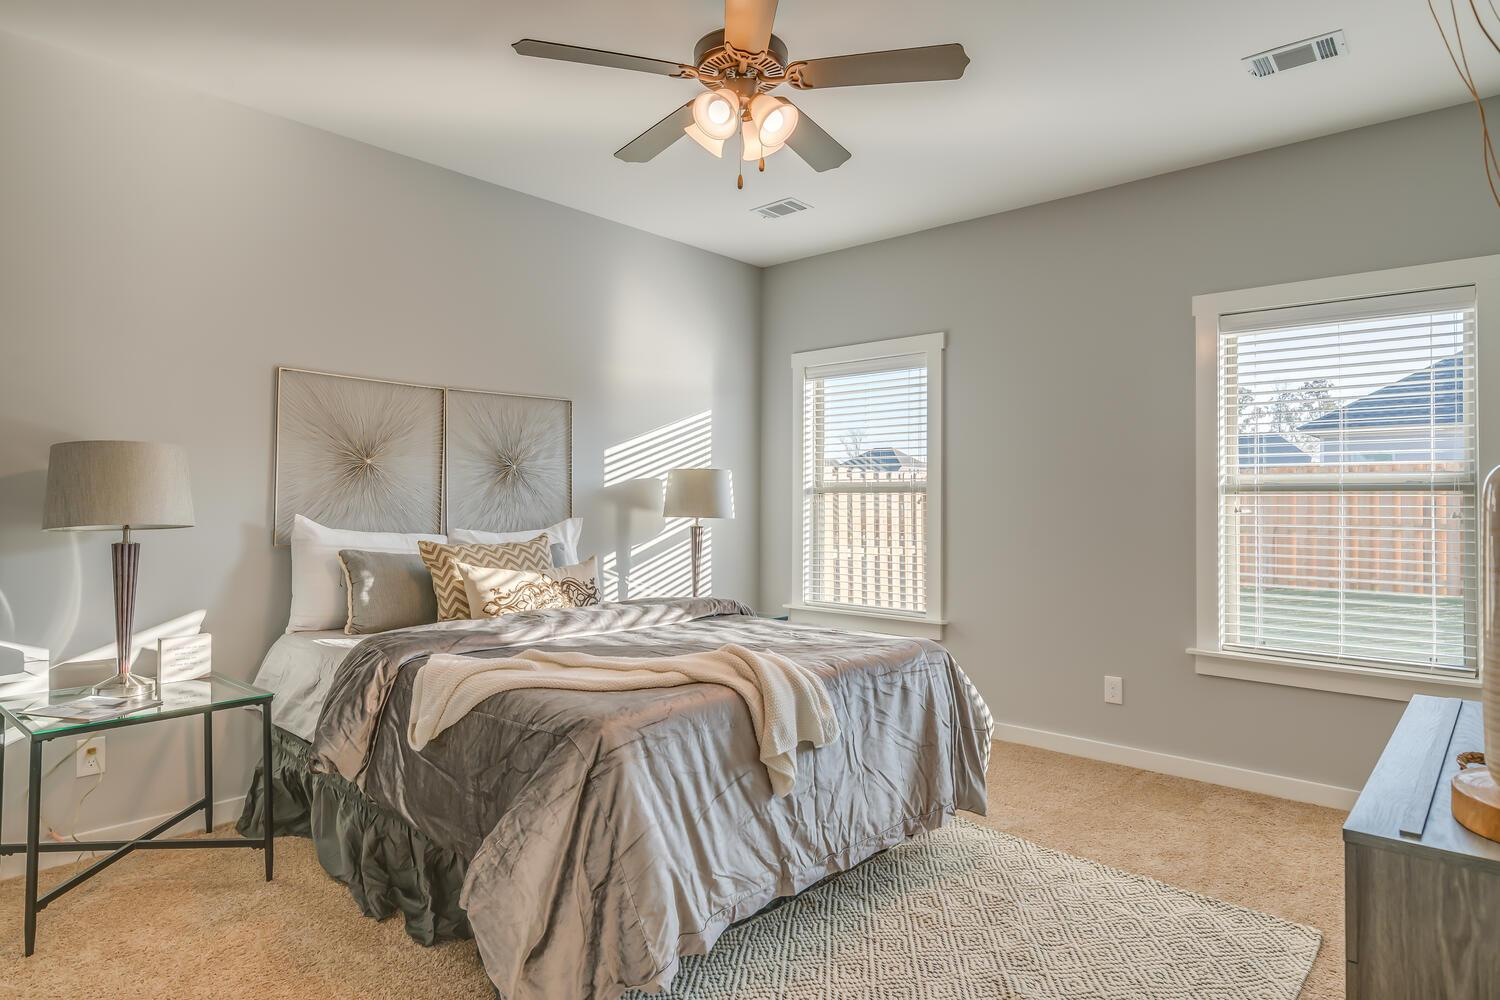 Bedroom featured in the Raleigh New Park By Lowder New Homes in Montgomery, AL